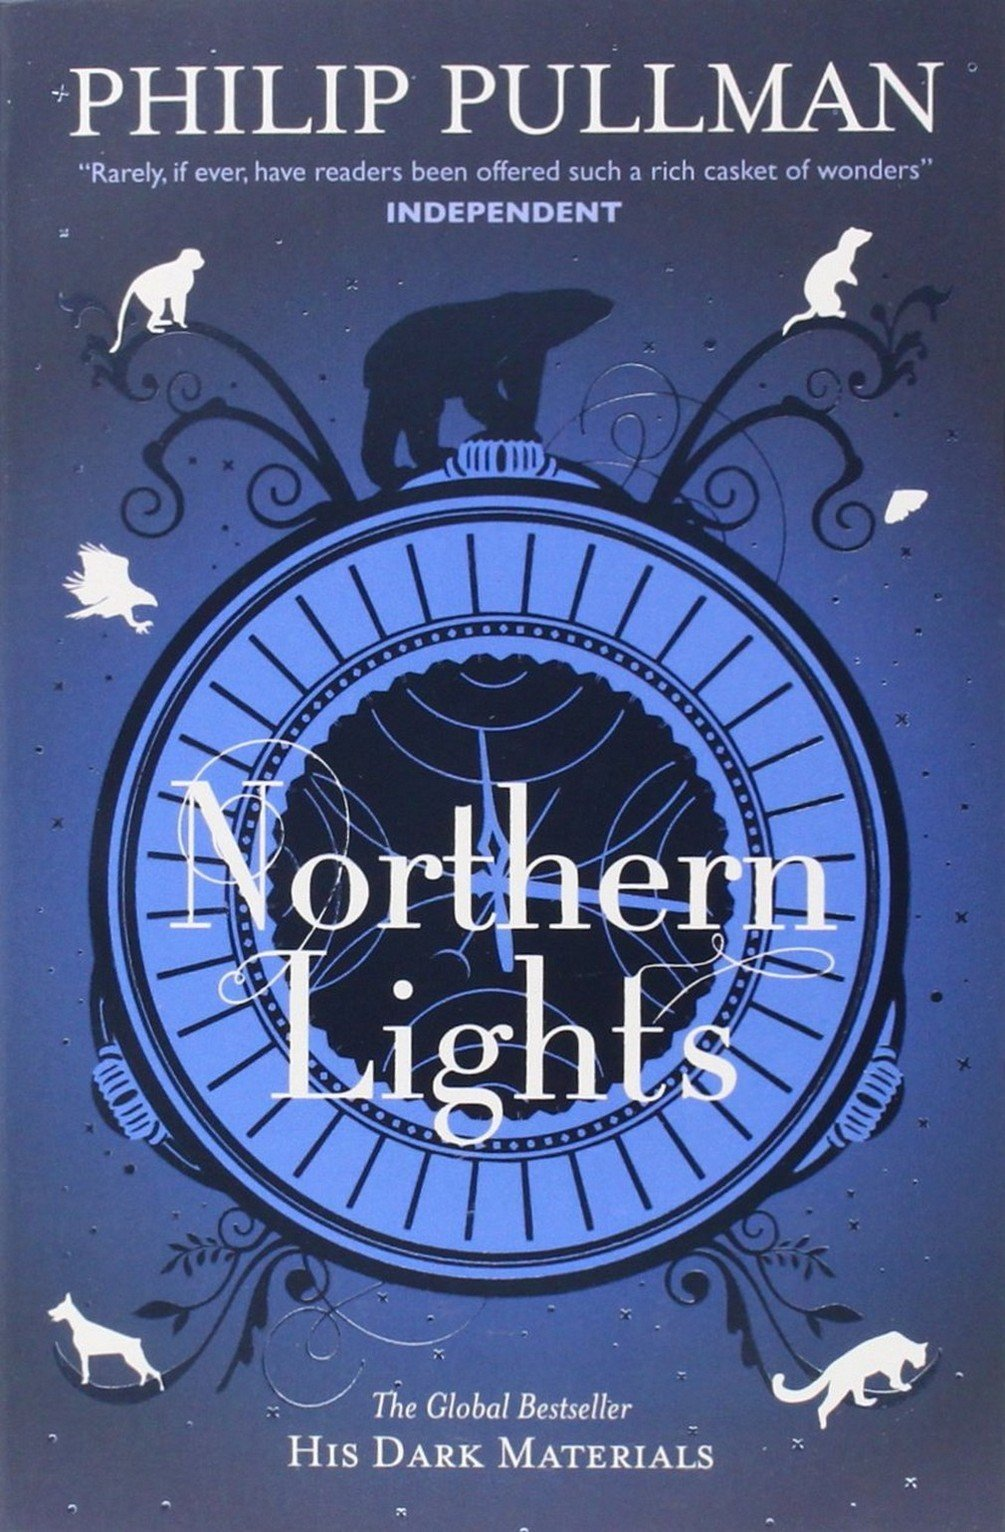 His Dark Materials series by Philip Pullman